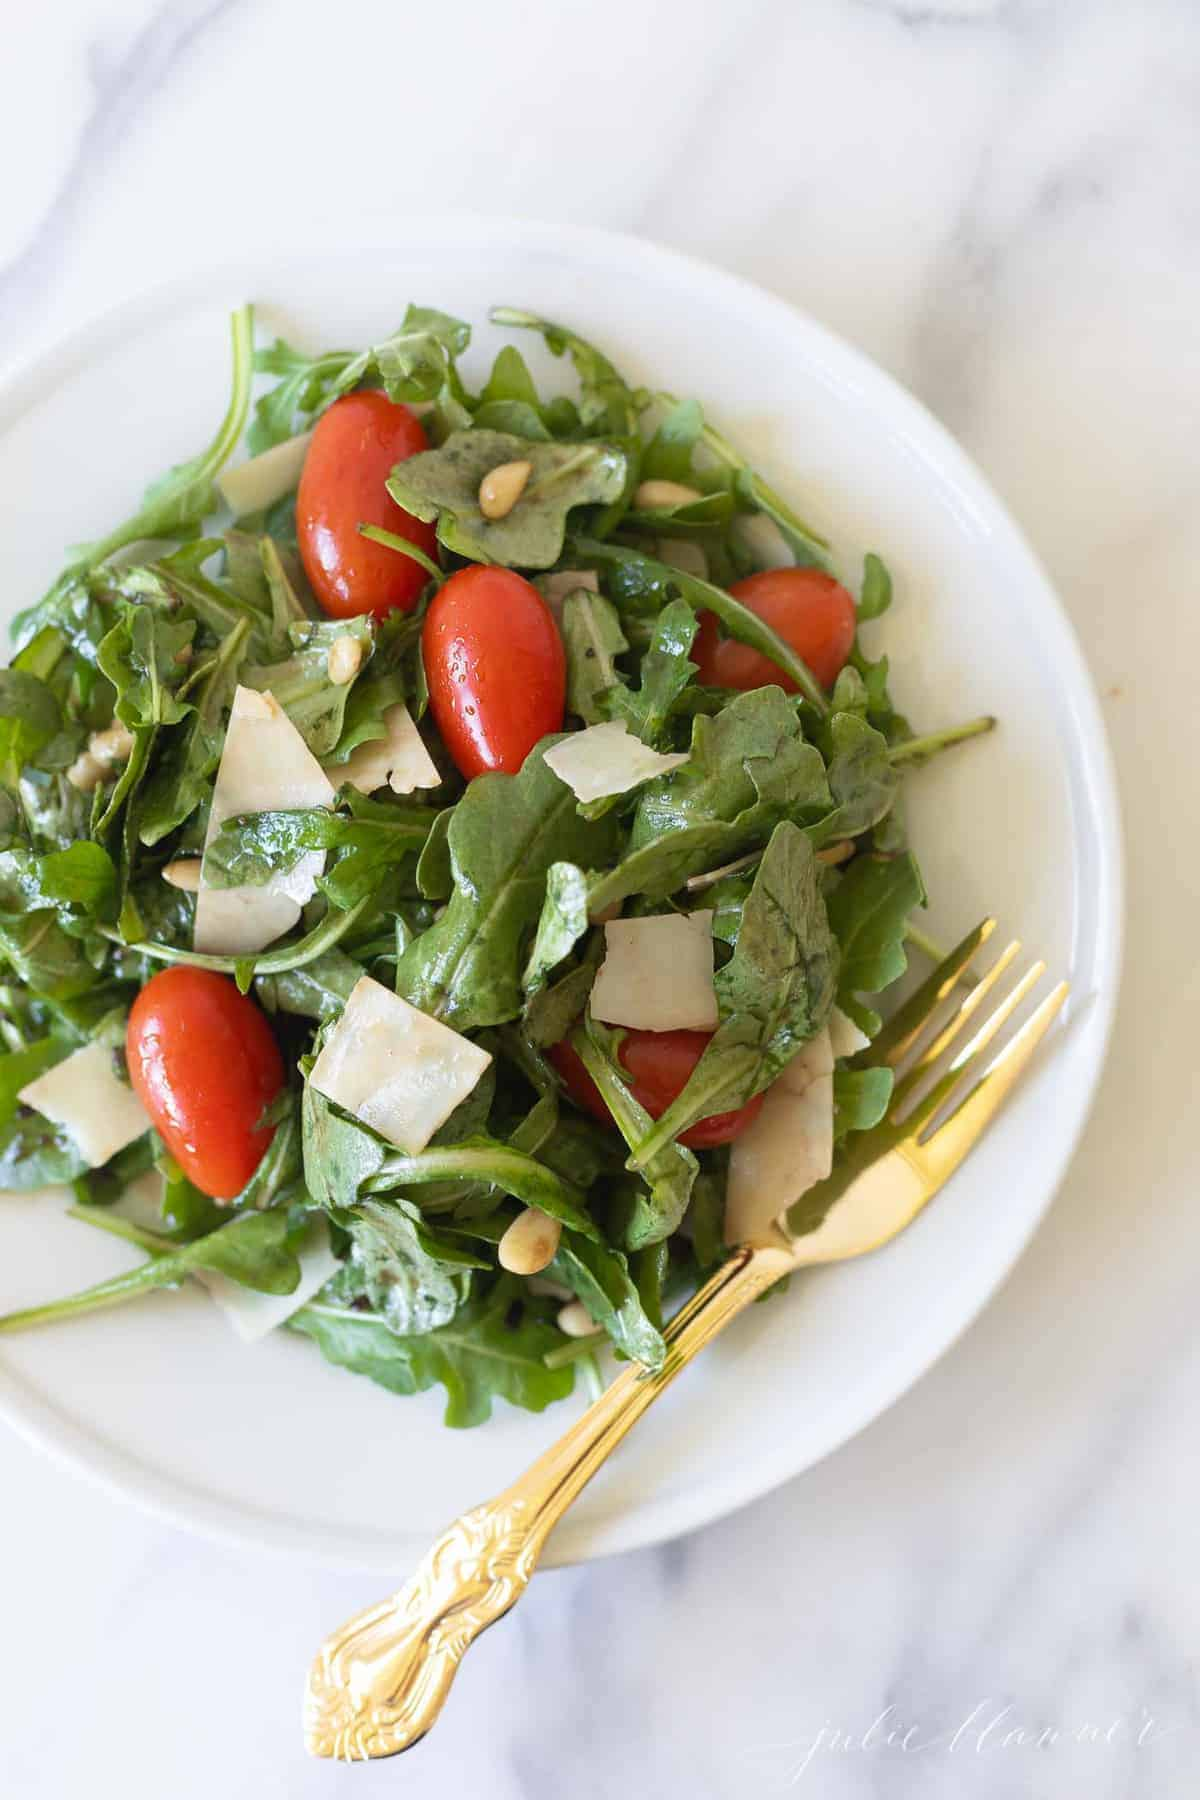 Marble countertop with a white salad plate filled with a green salad, cherry tomatoes, parmesan and more.